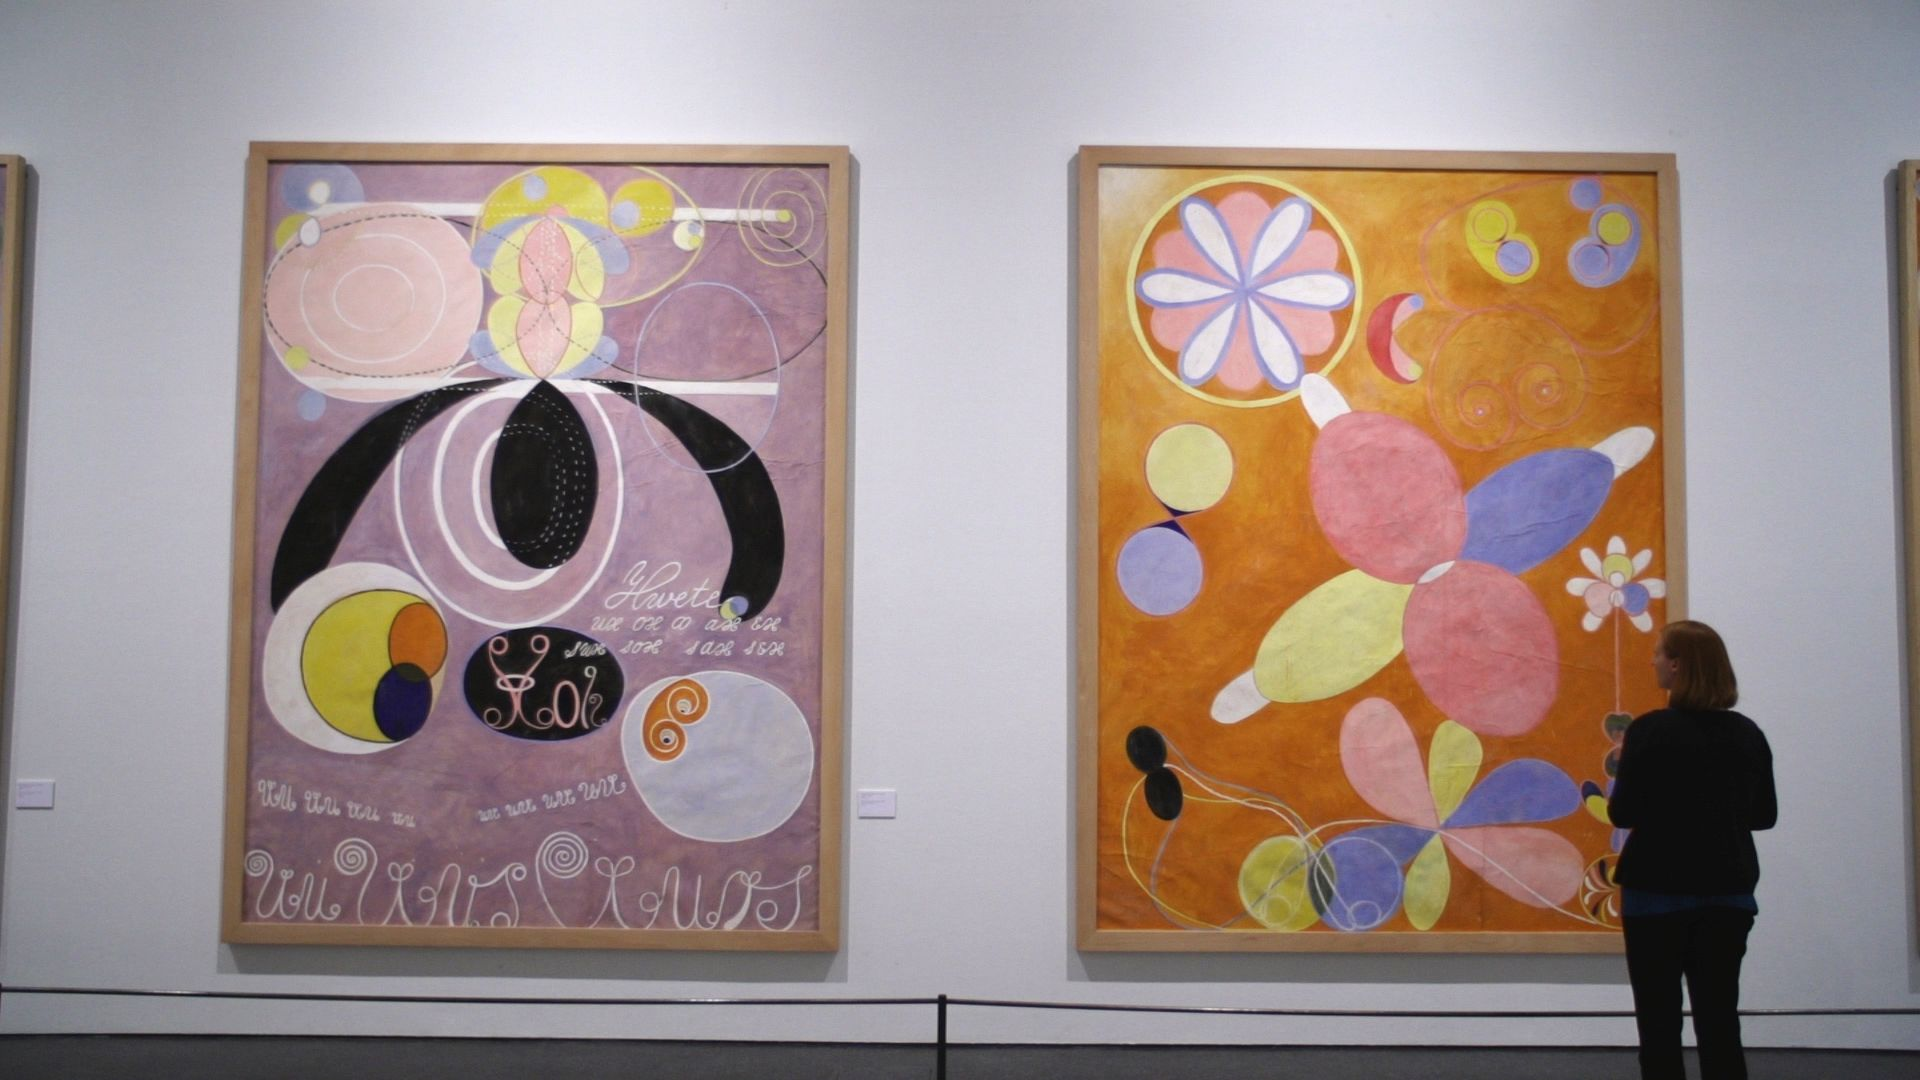 Beyond the Visible Hilma Af Klint documentary image